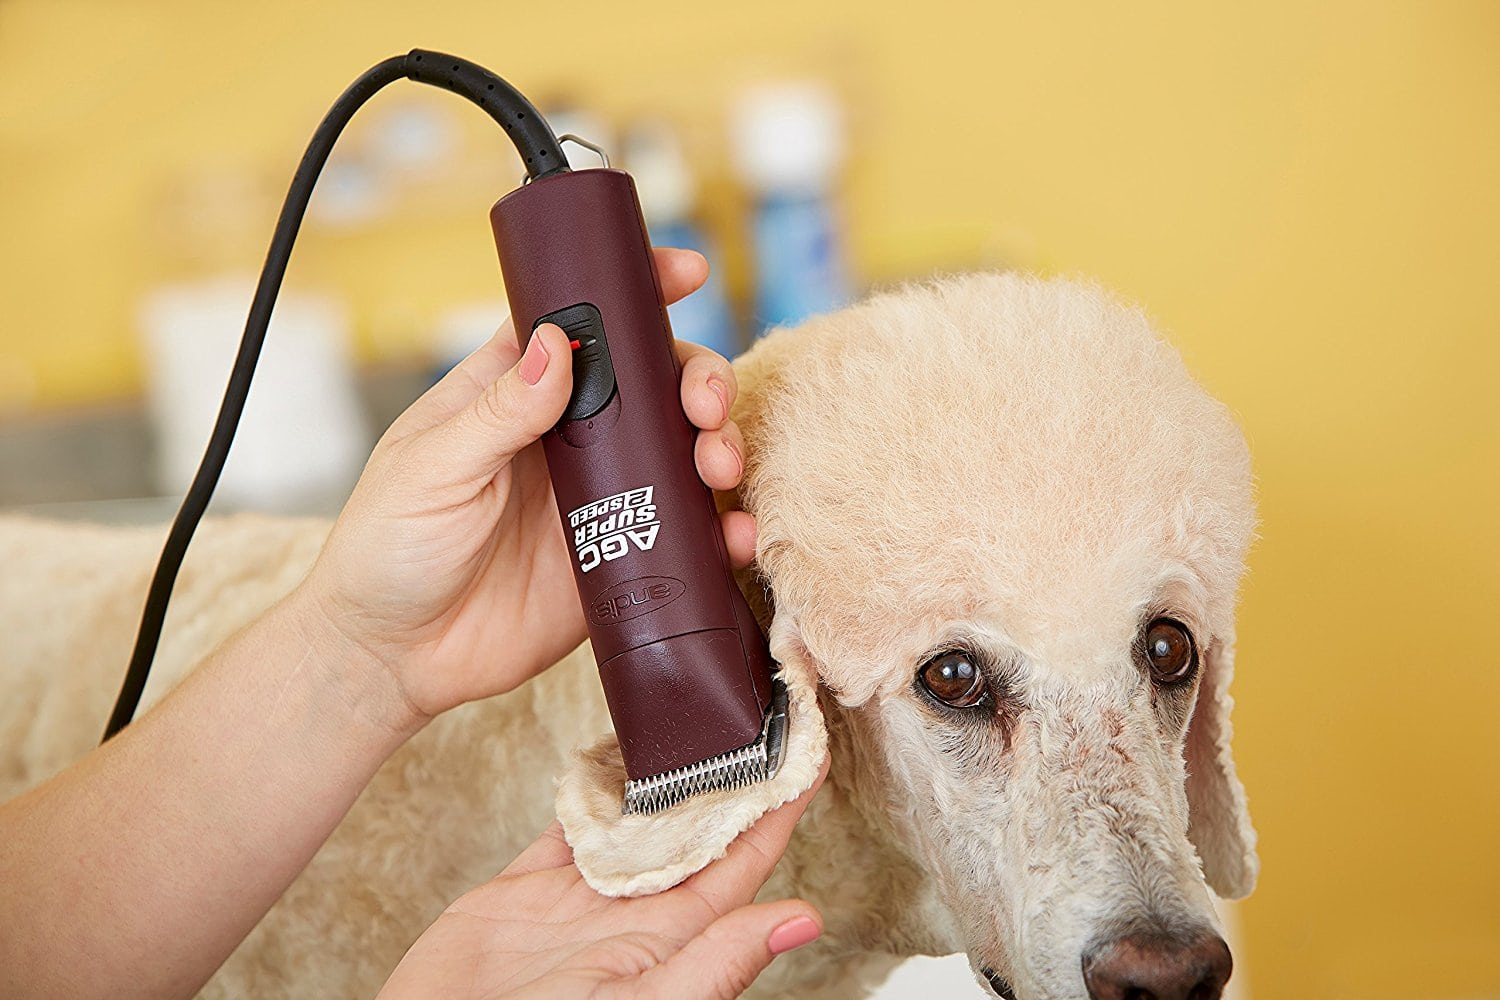 Best Dog Grooming Clippers Reviews by www.puppyurl.com